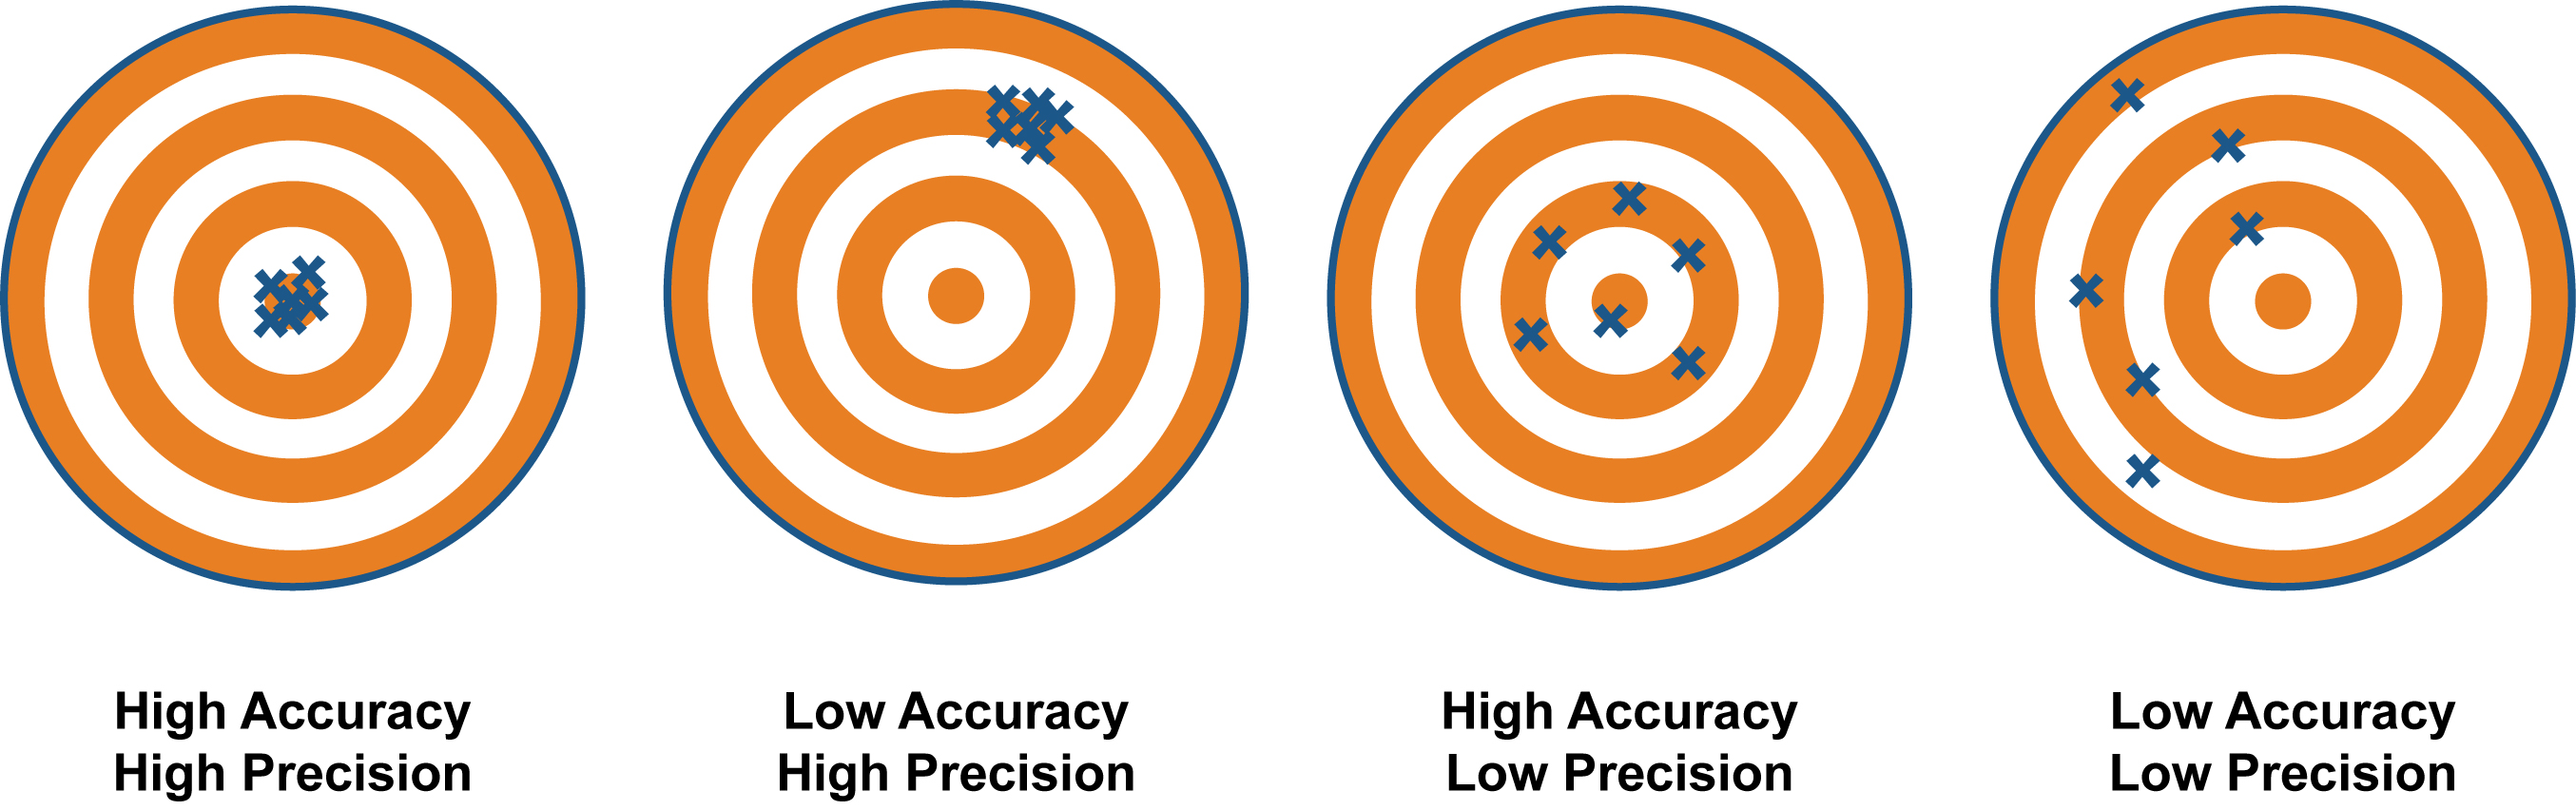 Accuracy-vs-precision1.jpg